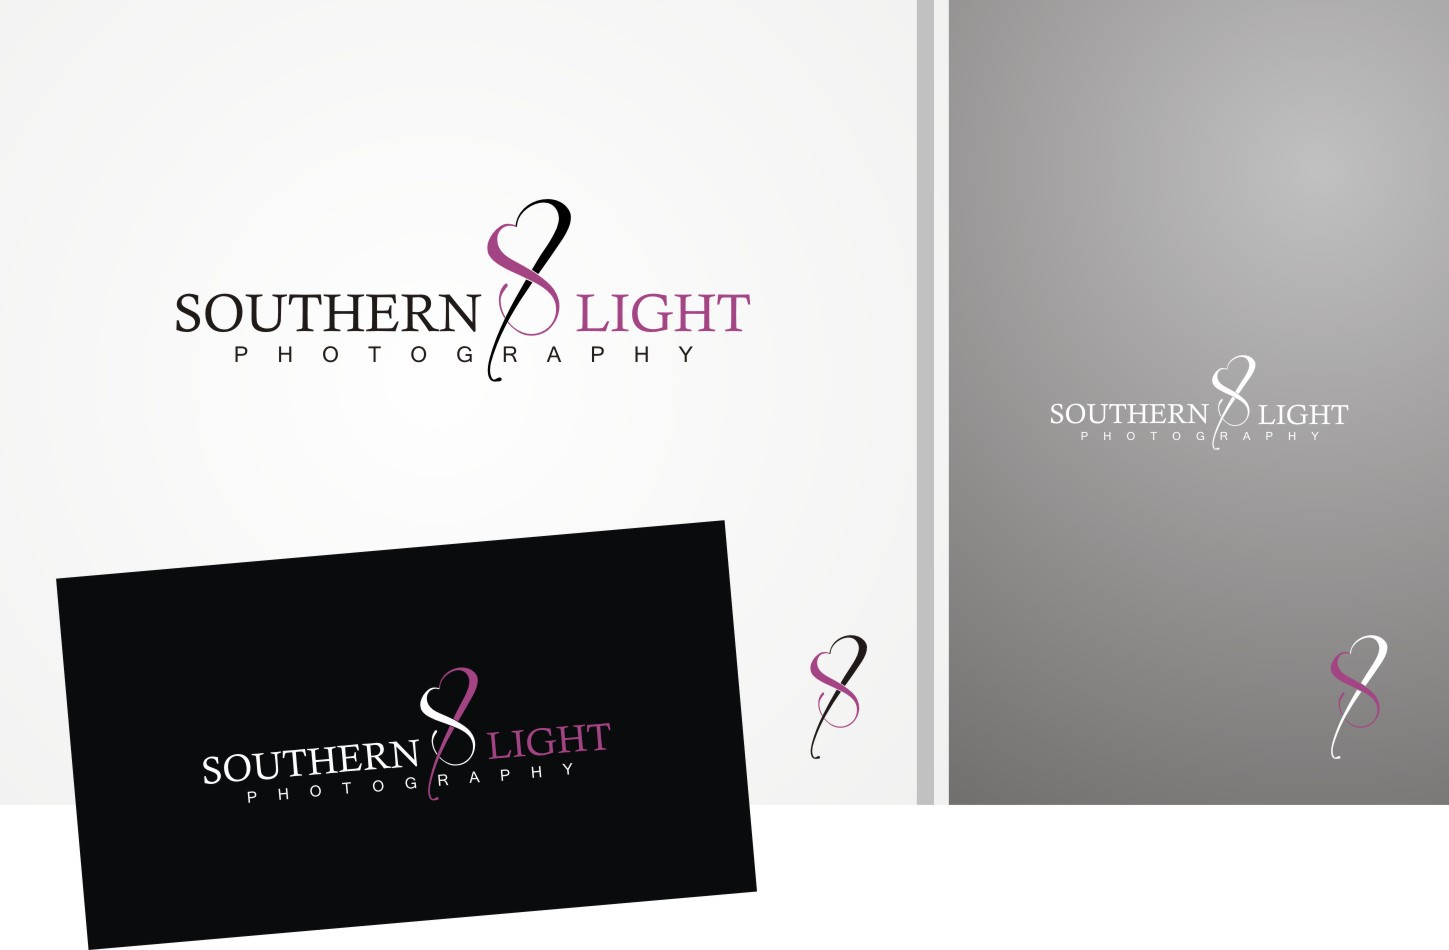 New logo wanted for Southern Light Photography